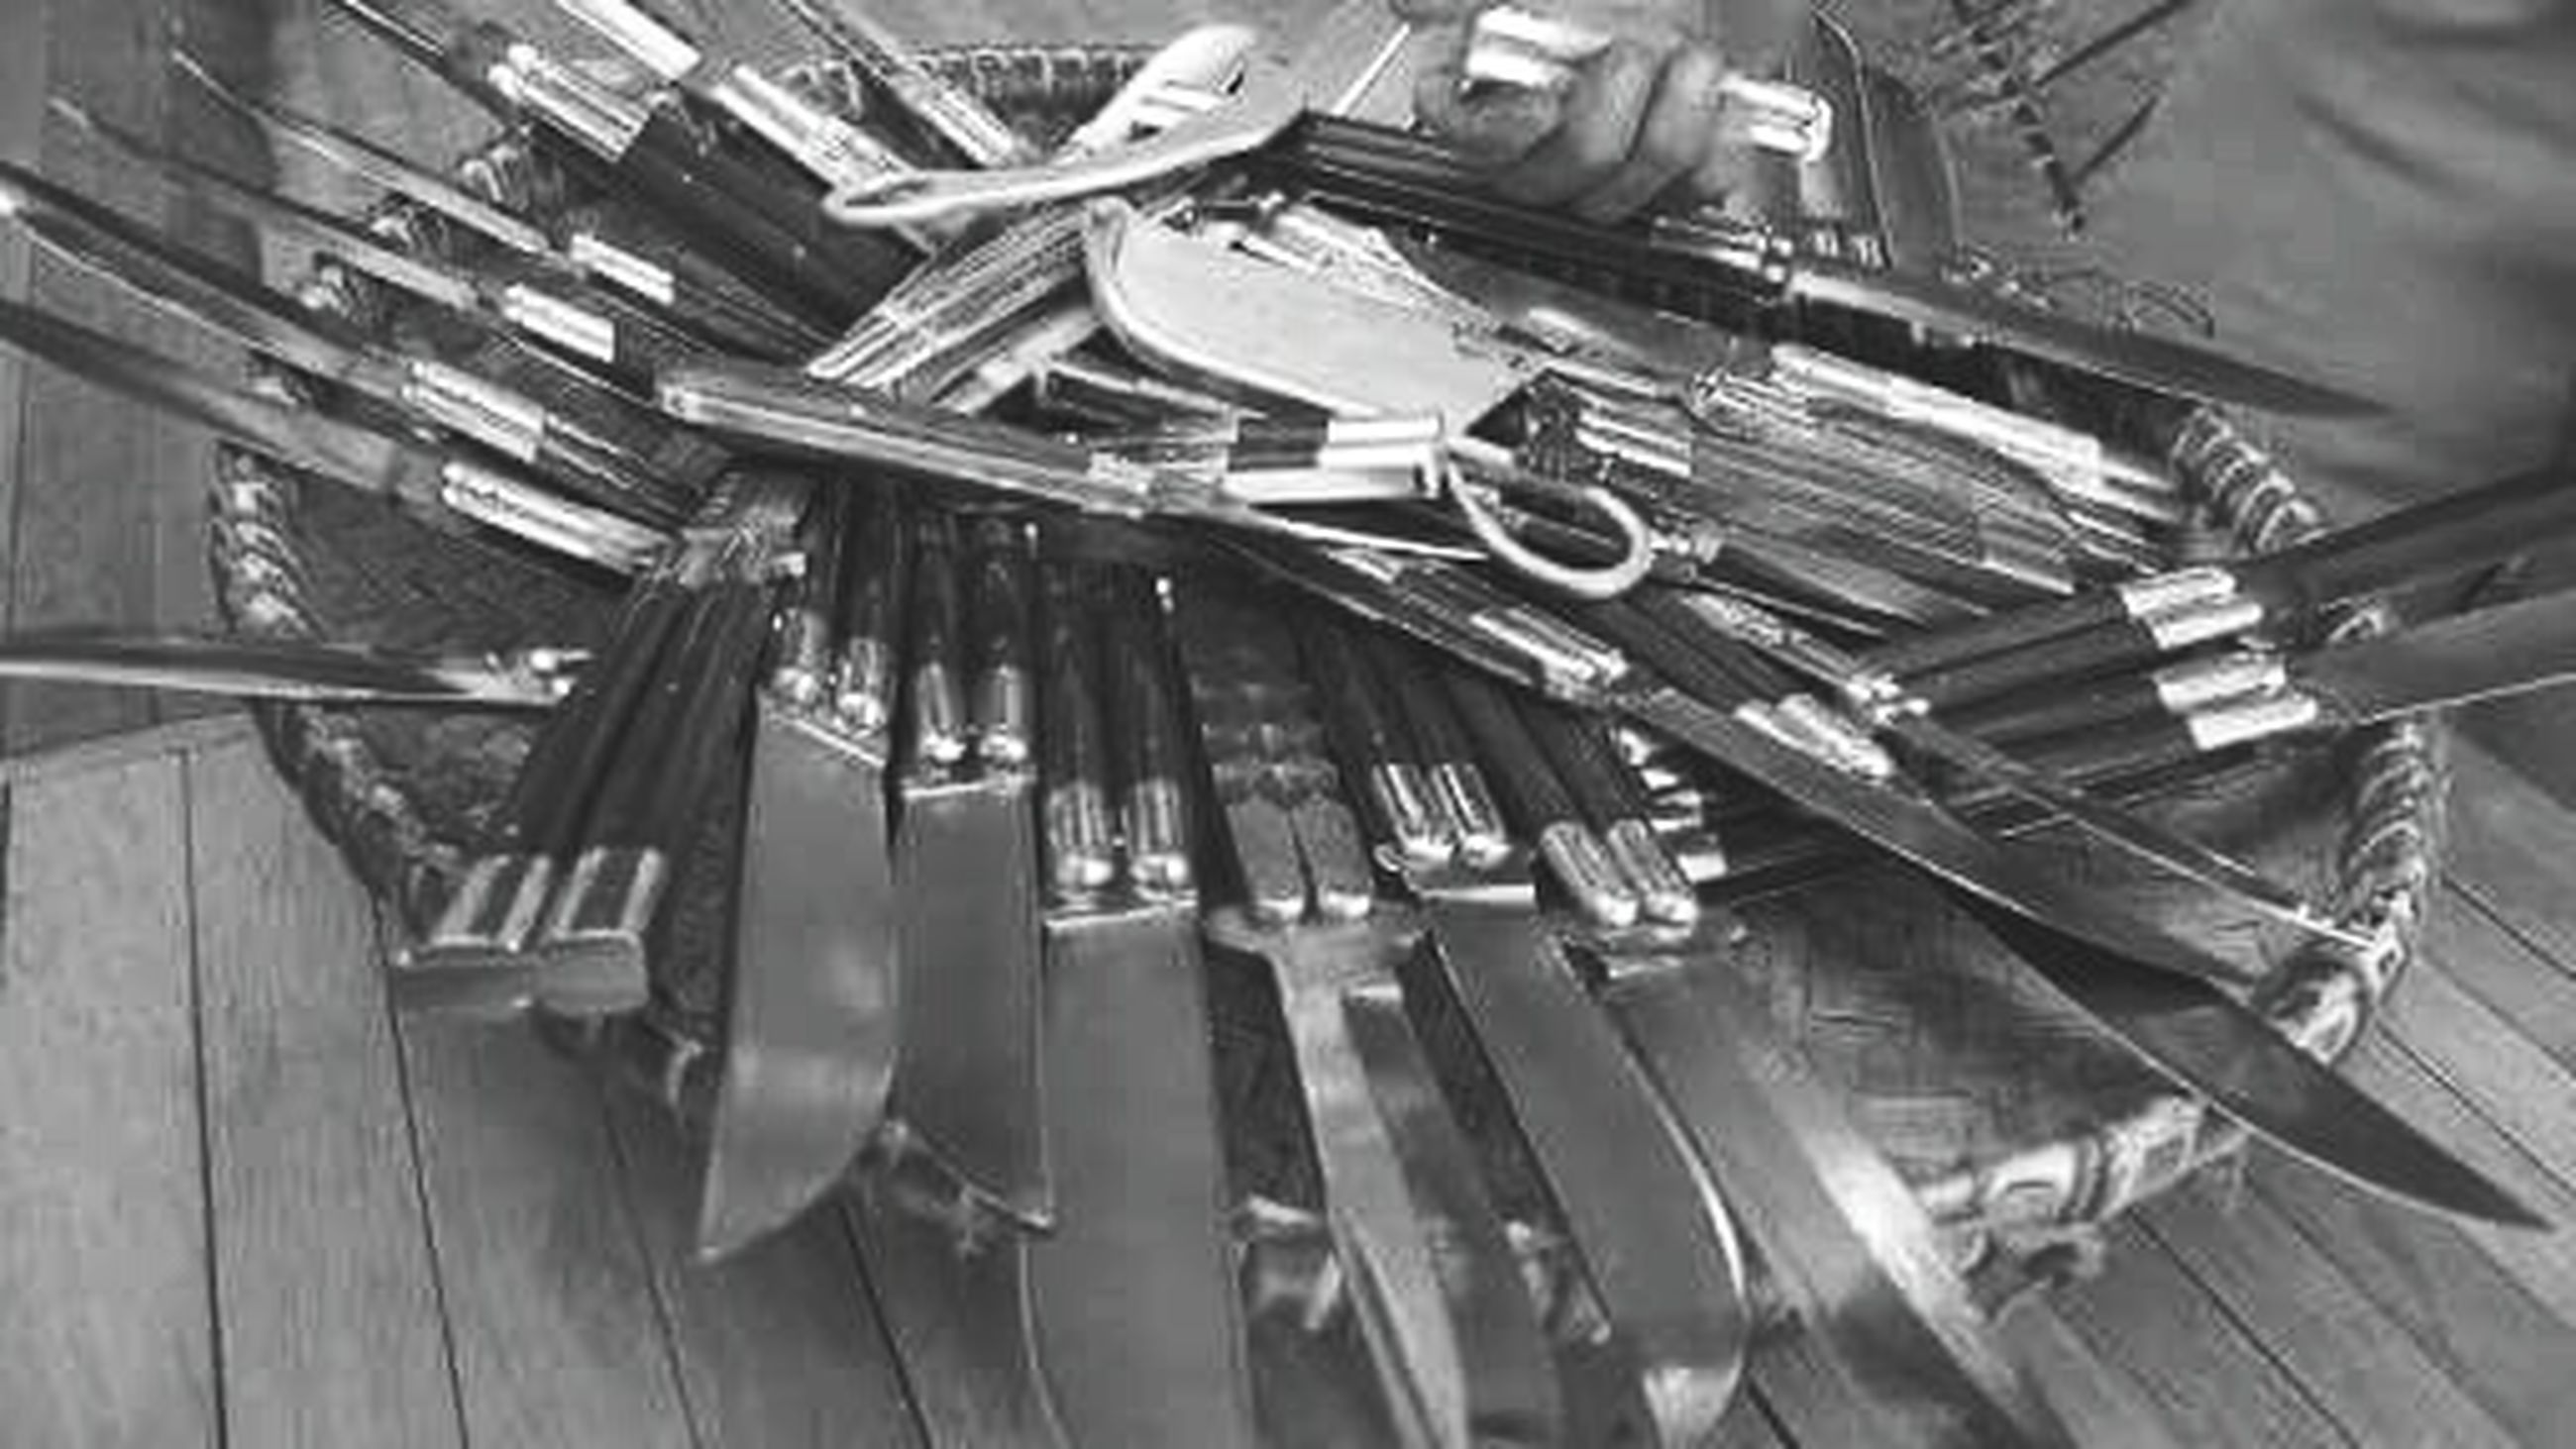 indoors, wood - material, large group of objects, still life, high angle view, chair, table, metal, abundance, in a row, close-up, arrangement, no people, absence, equipment, hanging, industry, group of objects, old, wooden